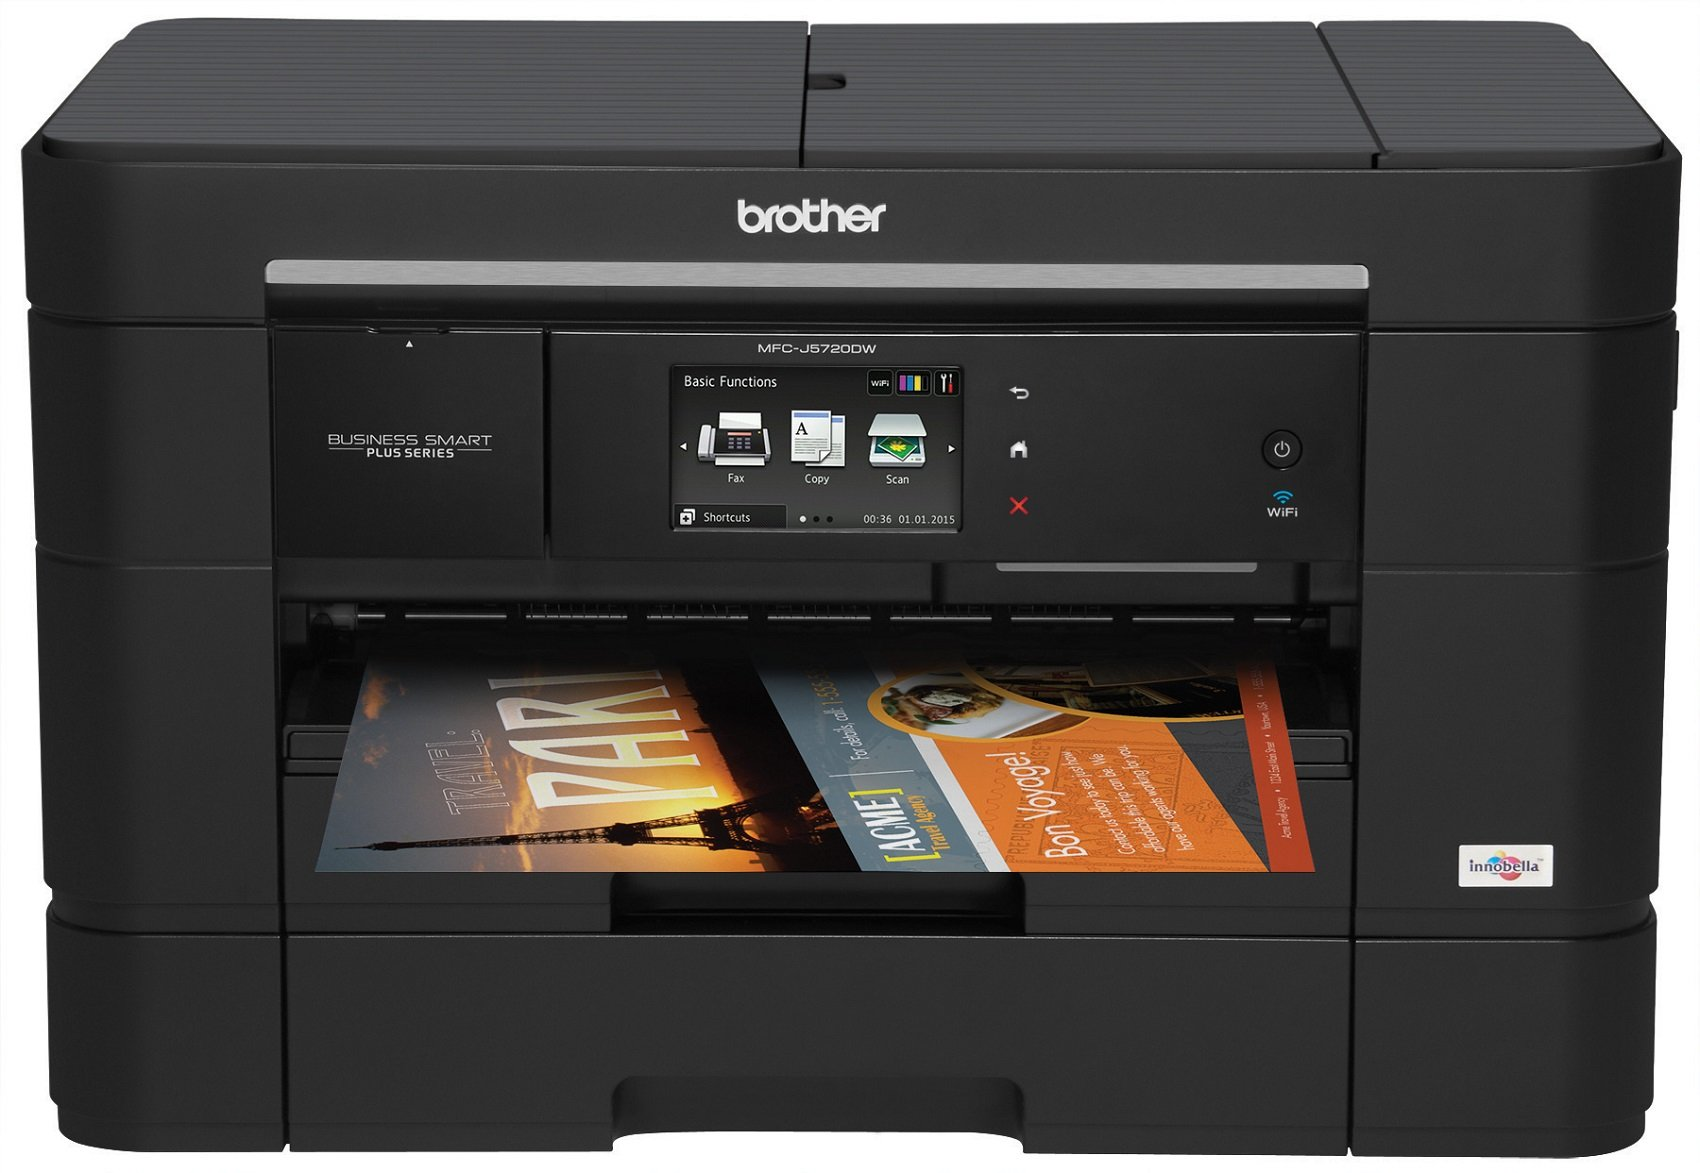 Brother Business Smart MFCJ5720DW All-in-One Color Inkjet Printer with Fax, Amazon Dash Replenishment Enabled